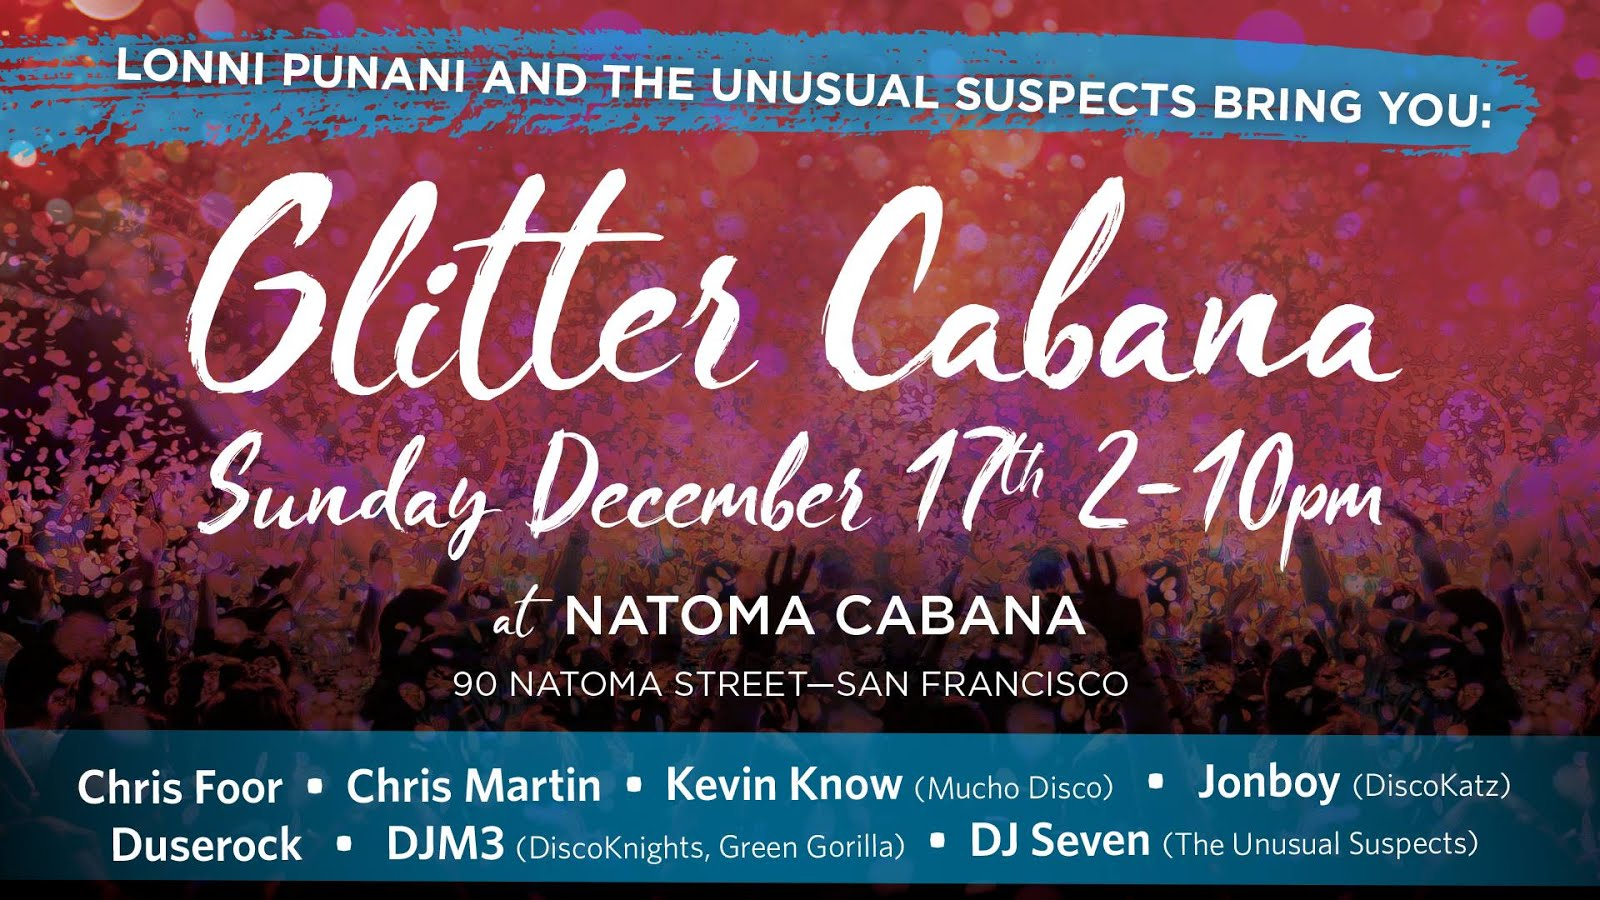 12/17: Glitter Cabana  (2 PM - 10 PM) @ pin Hide Map Natoma Cabana